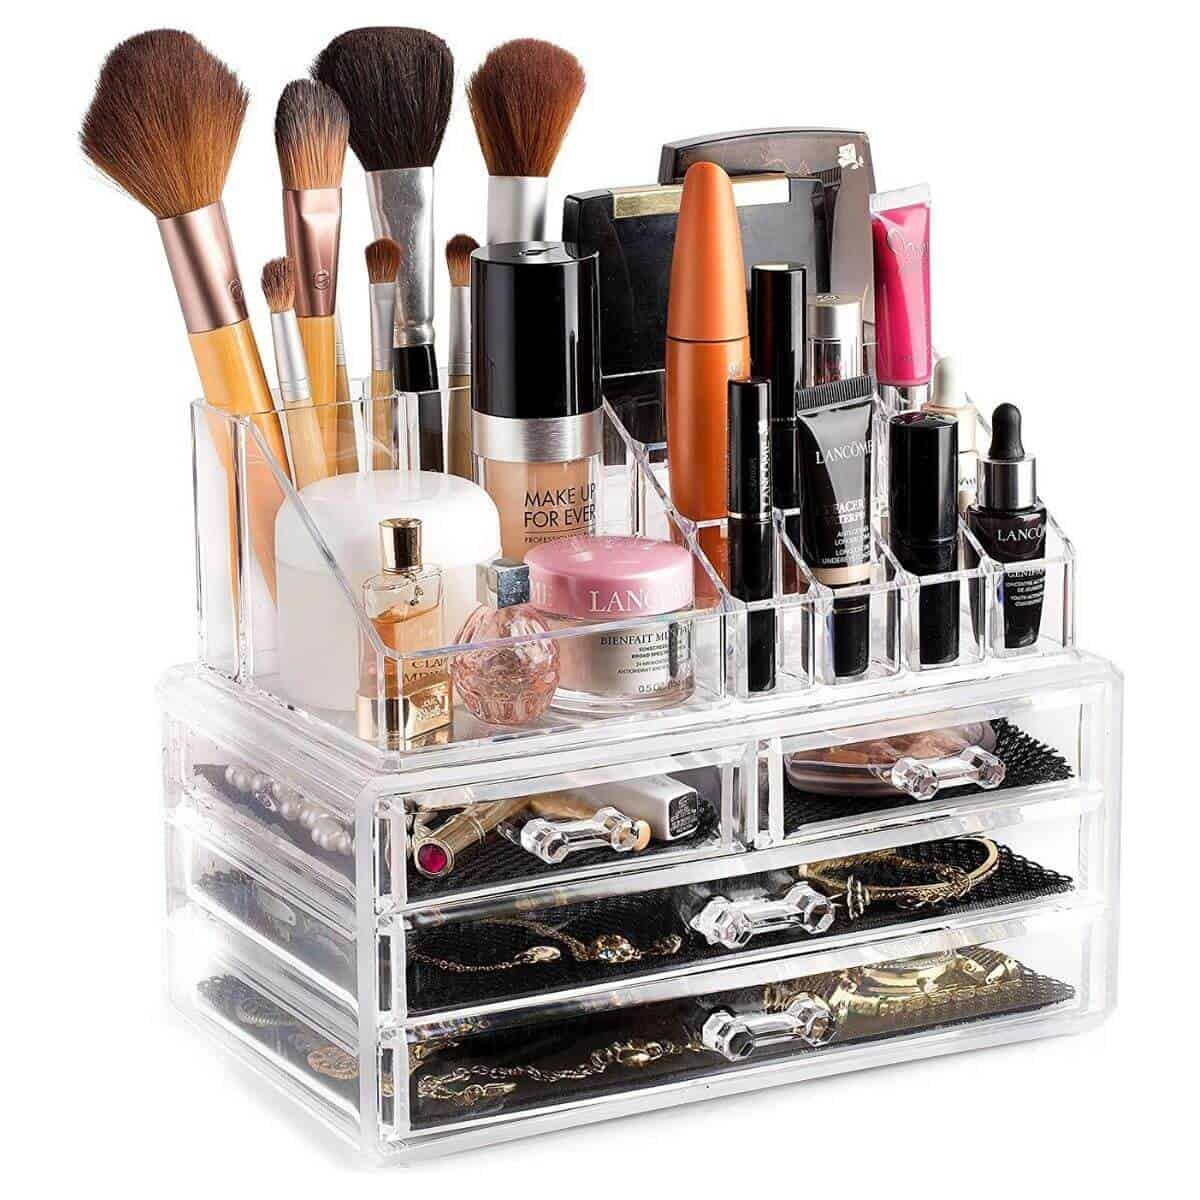 Clear makeup and jewelry organizer.